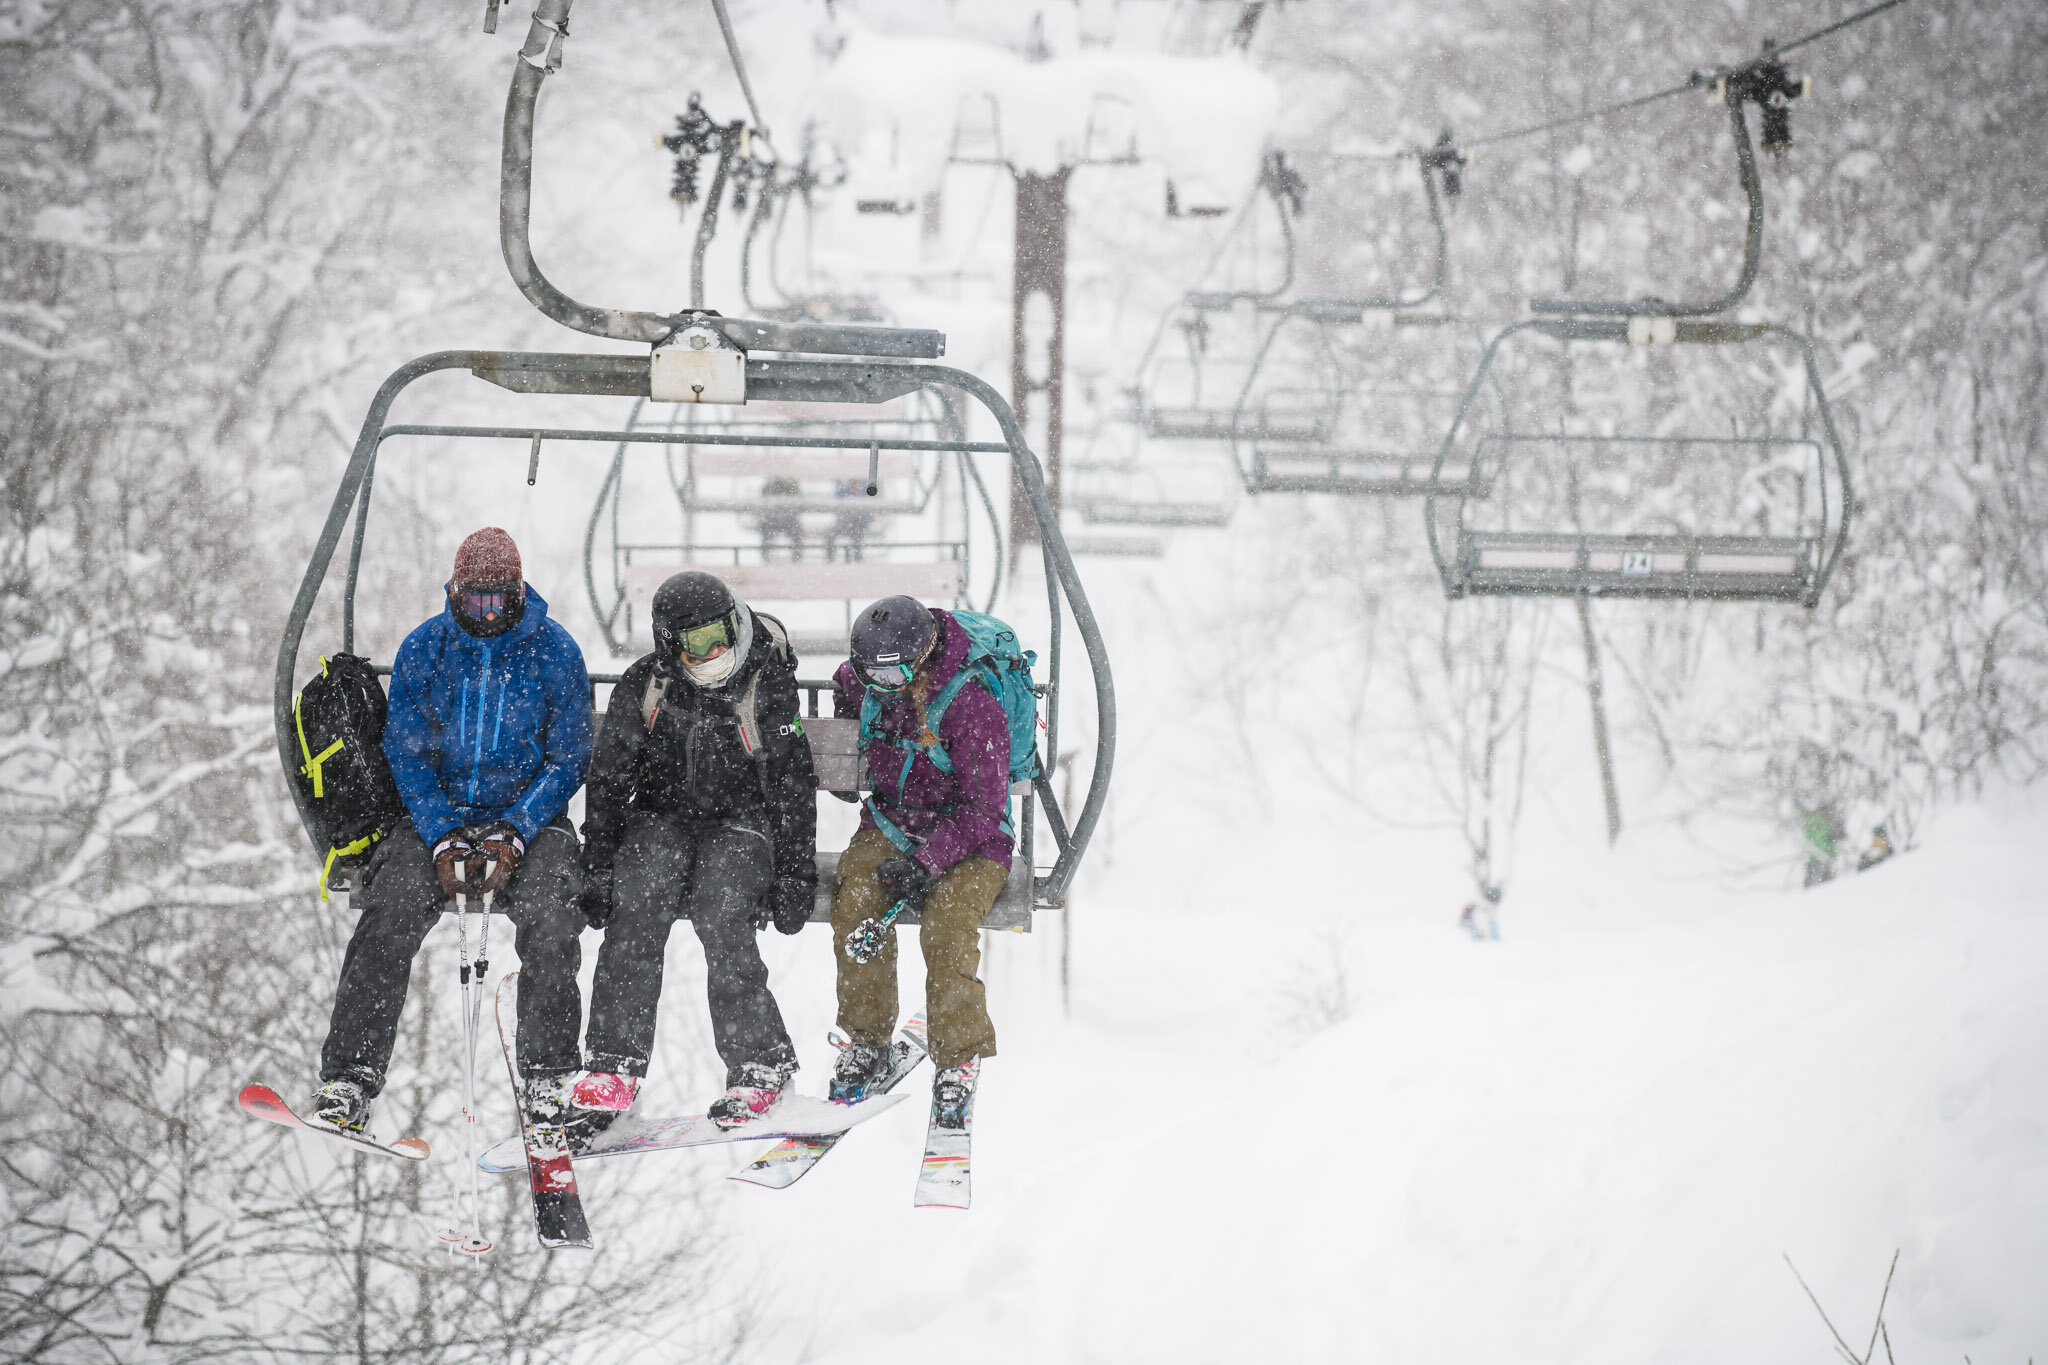 lifts with friends